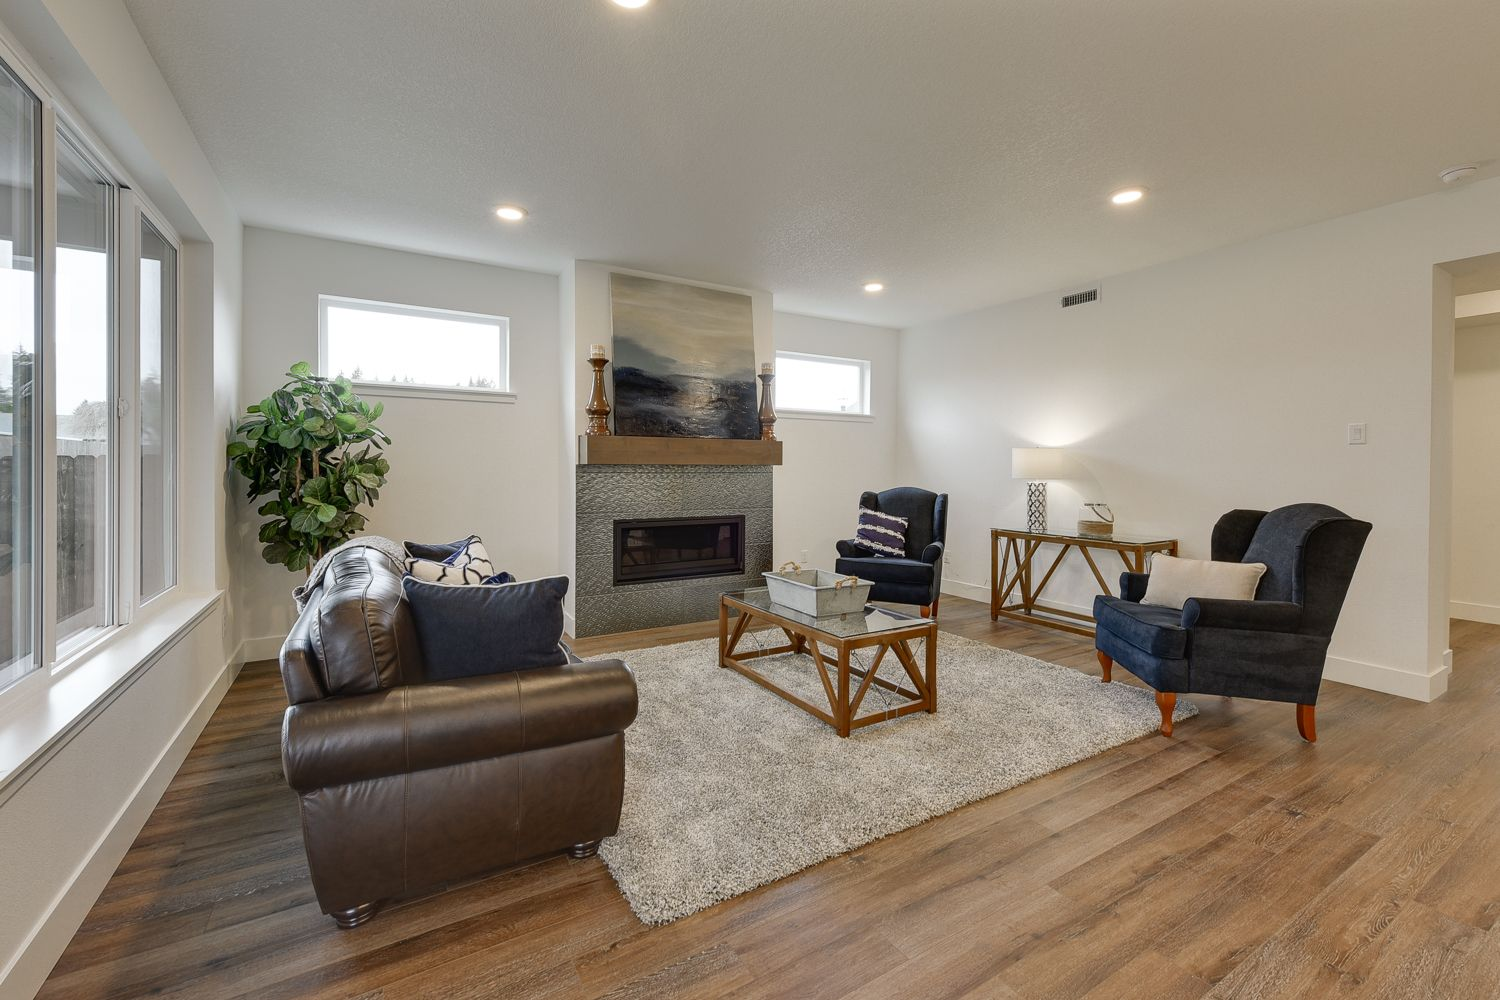 Living Area featured in the Whidbey By New Tradition Homes in Richland, WA